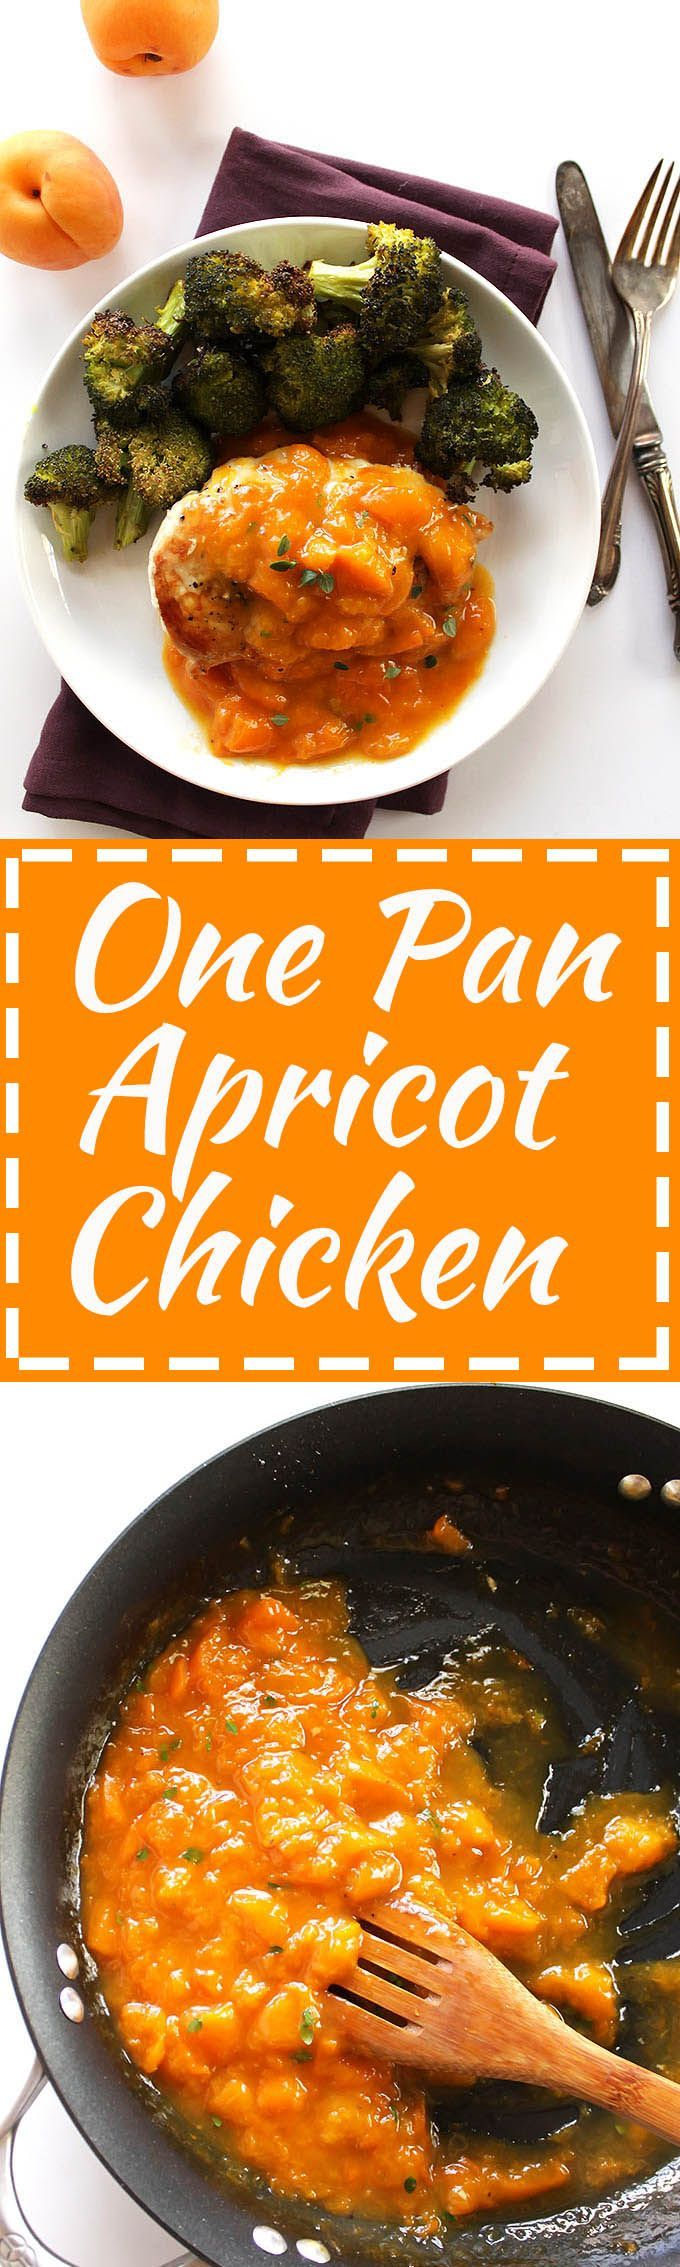 One Pan Apricot Chicken - Pan seared chicken breasts with a sweet, luscious sauce made with fresh apricots. This recipe is fancy enough for a special occasion, yet EASY enough to make for a weeknight meal. Gluten Free/Refined Sugar Free.